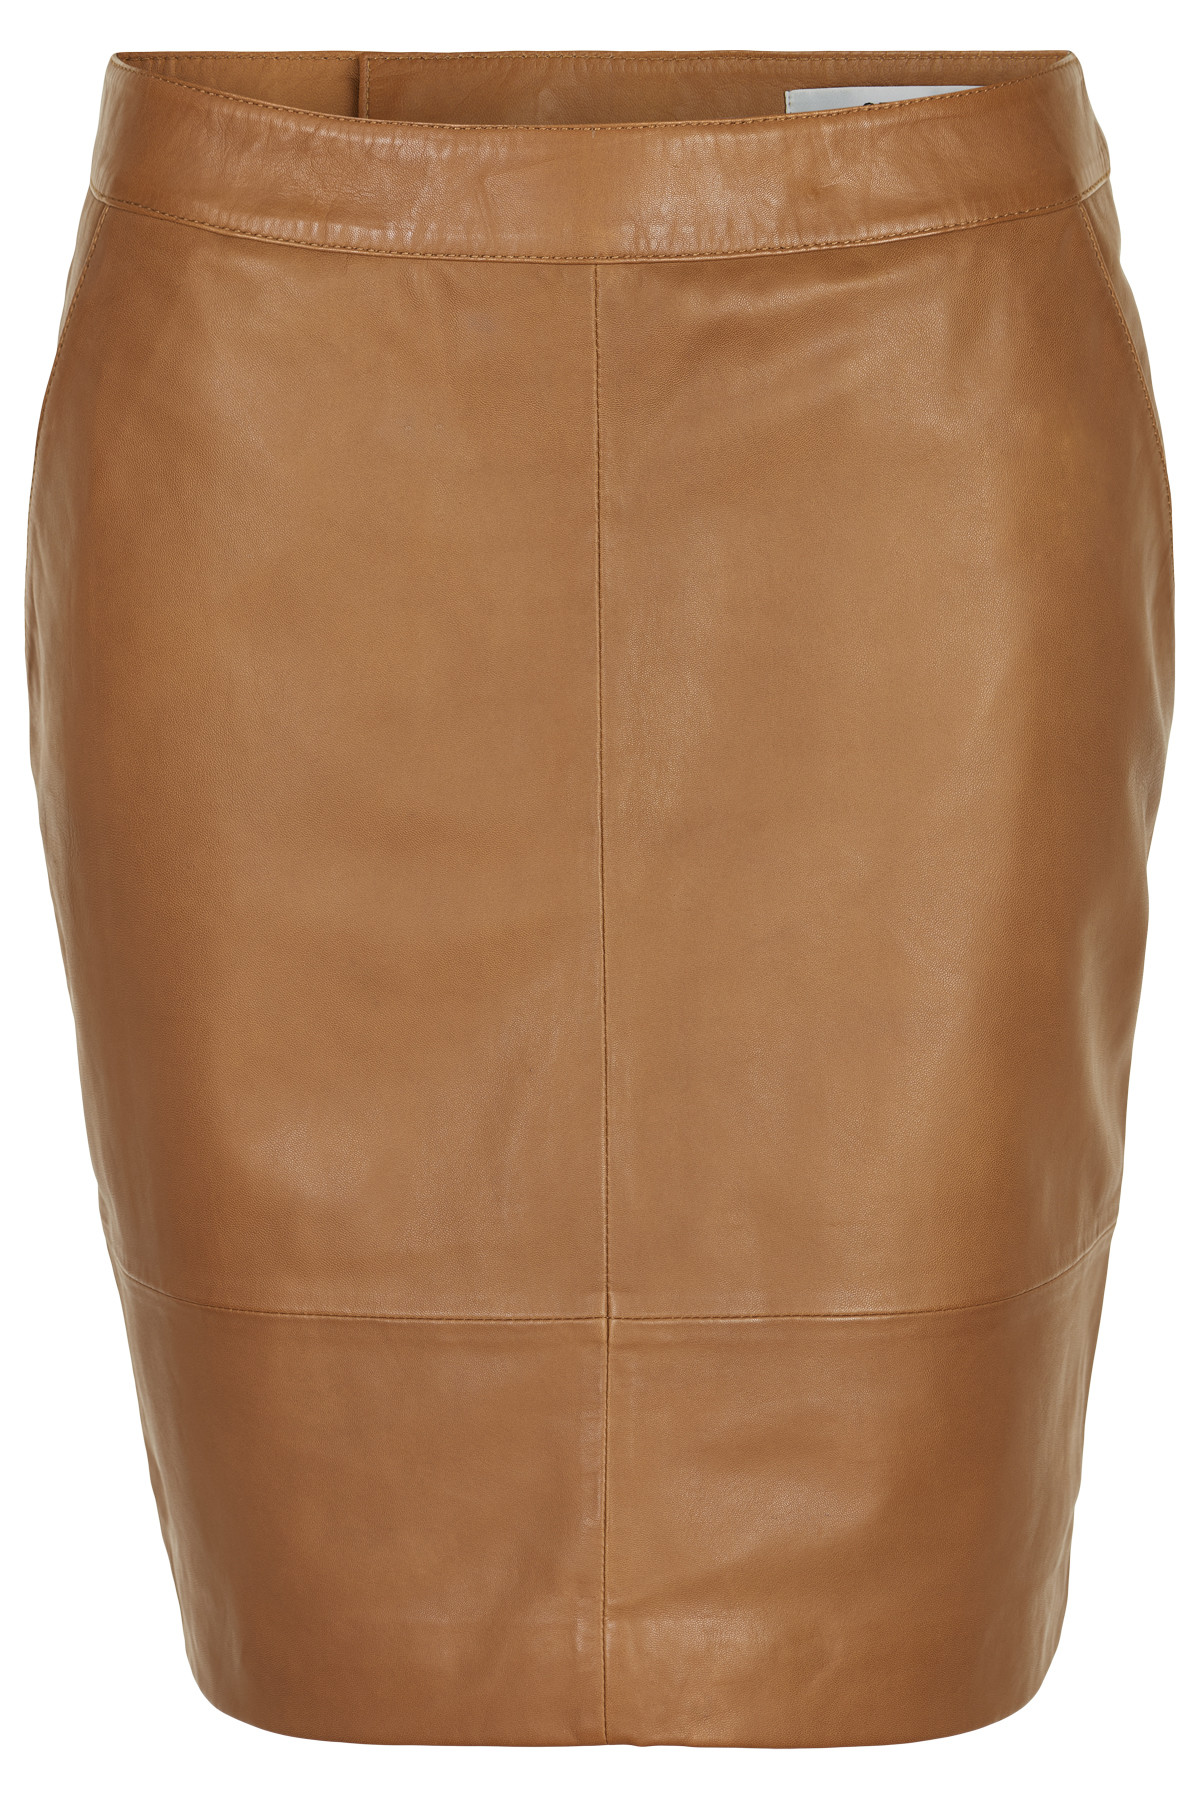 Image of   GESTUZ CHARGZ MINI SKIRT 10903813 (Bone Brown 90653, 34)